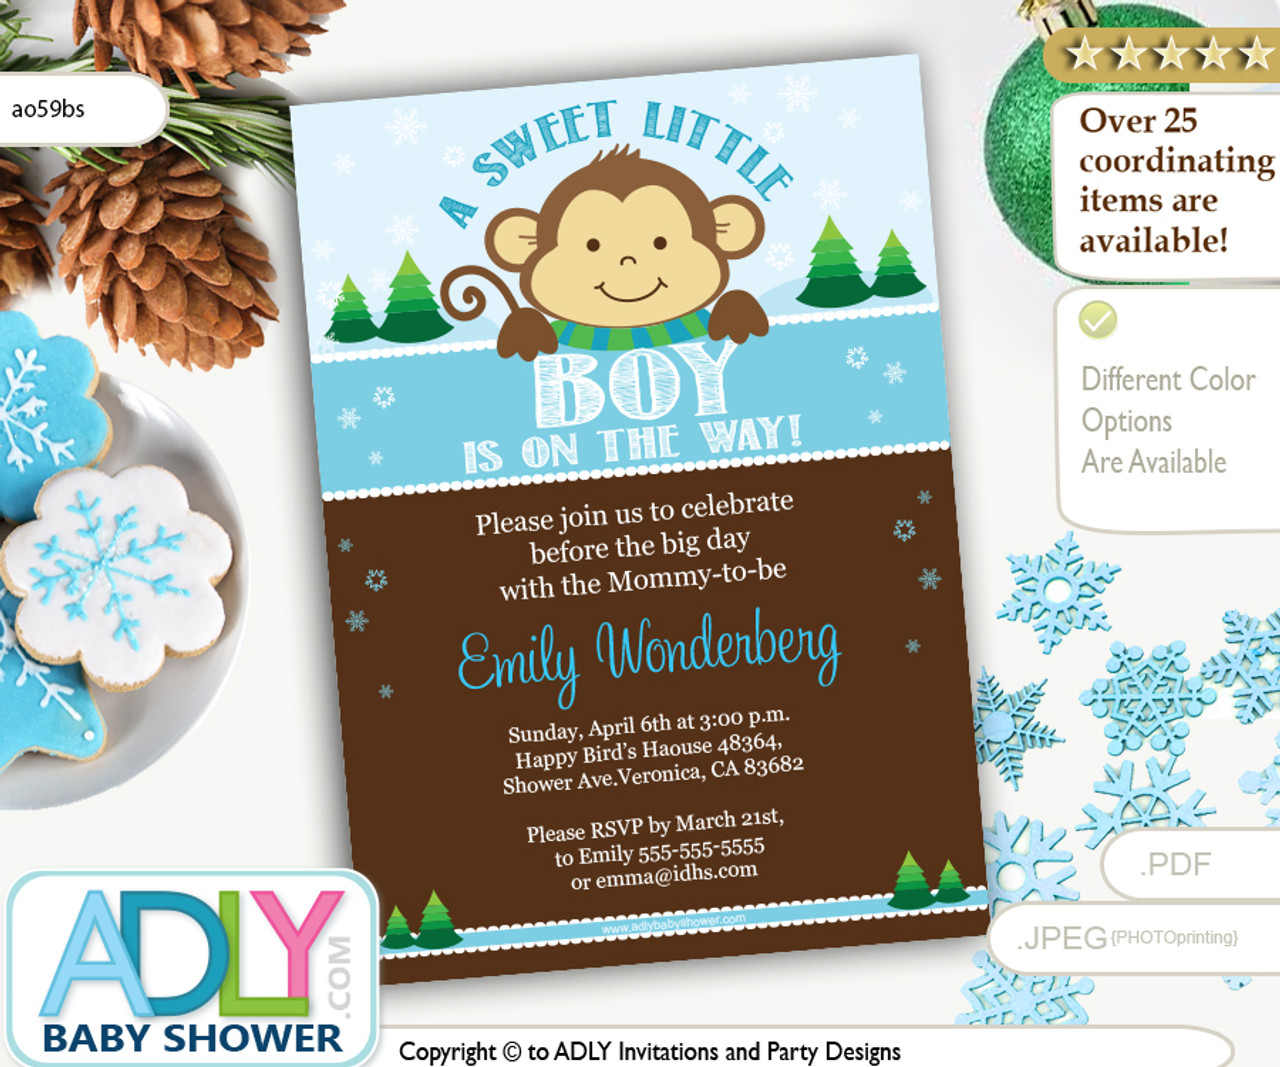 Winter Monkey Boy Baby Shower Invitation Printable DIY With Pine Trees And Snowflakes